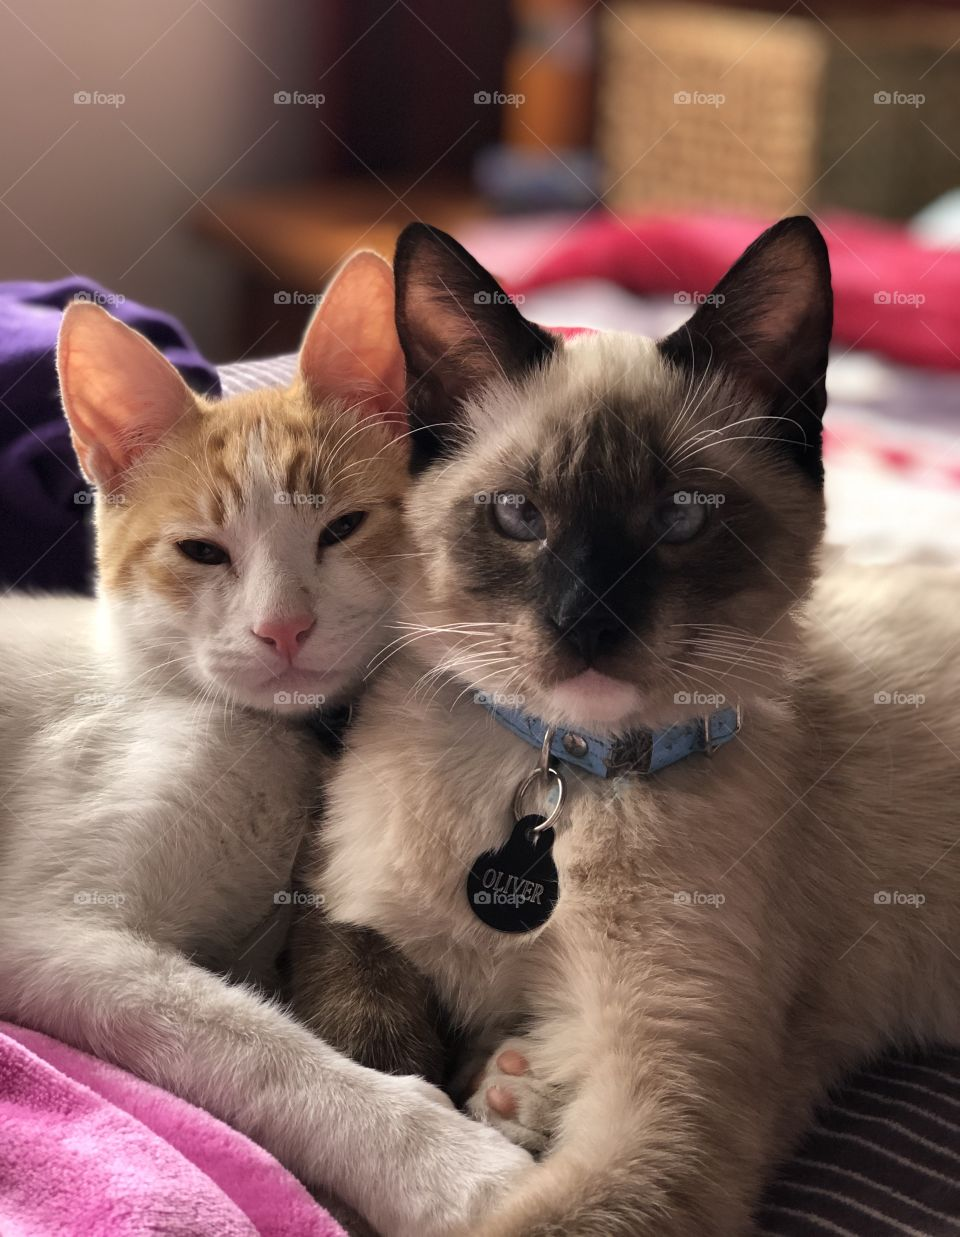 Two kitties snuggling together on the bed